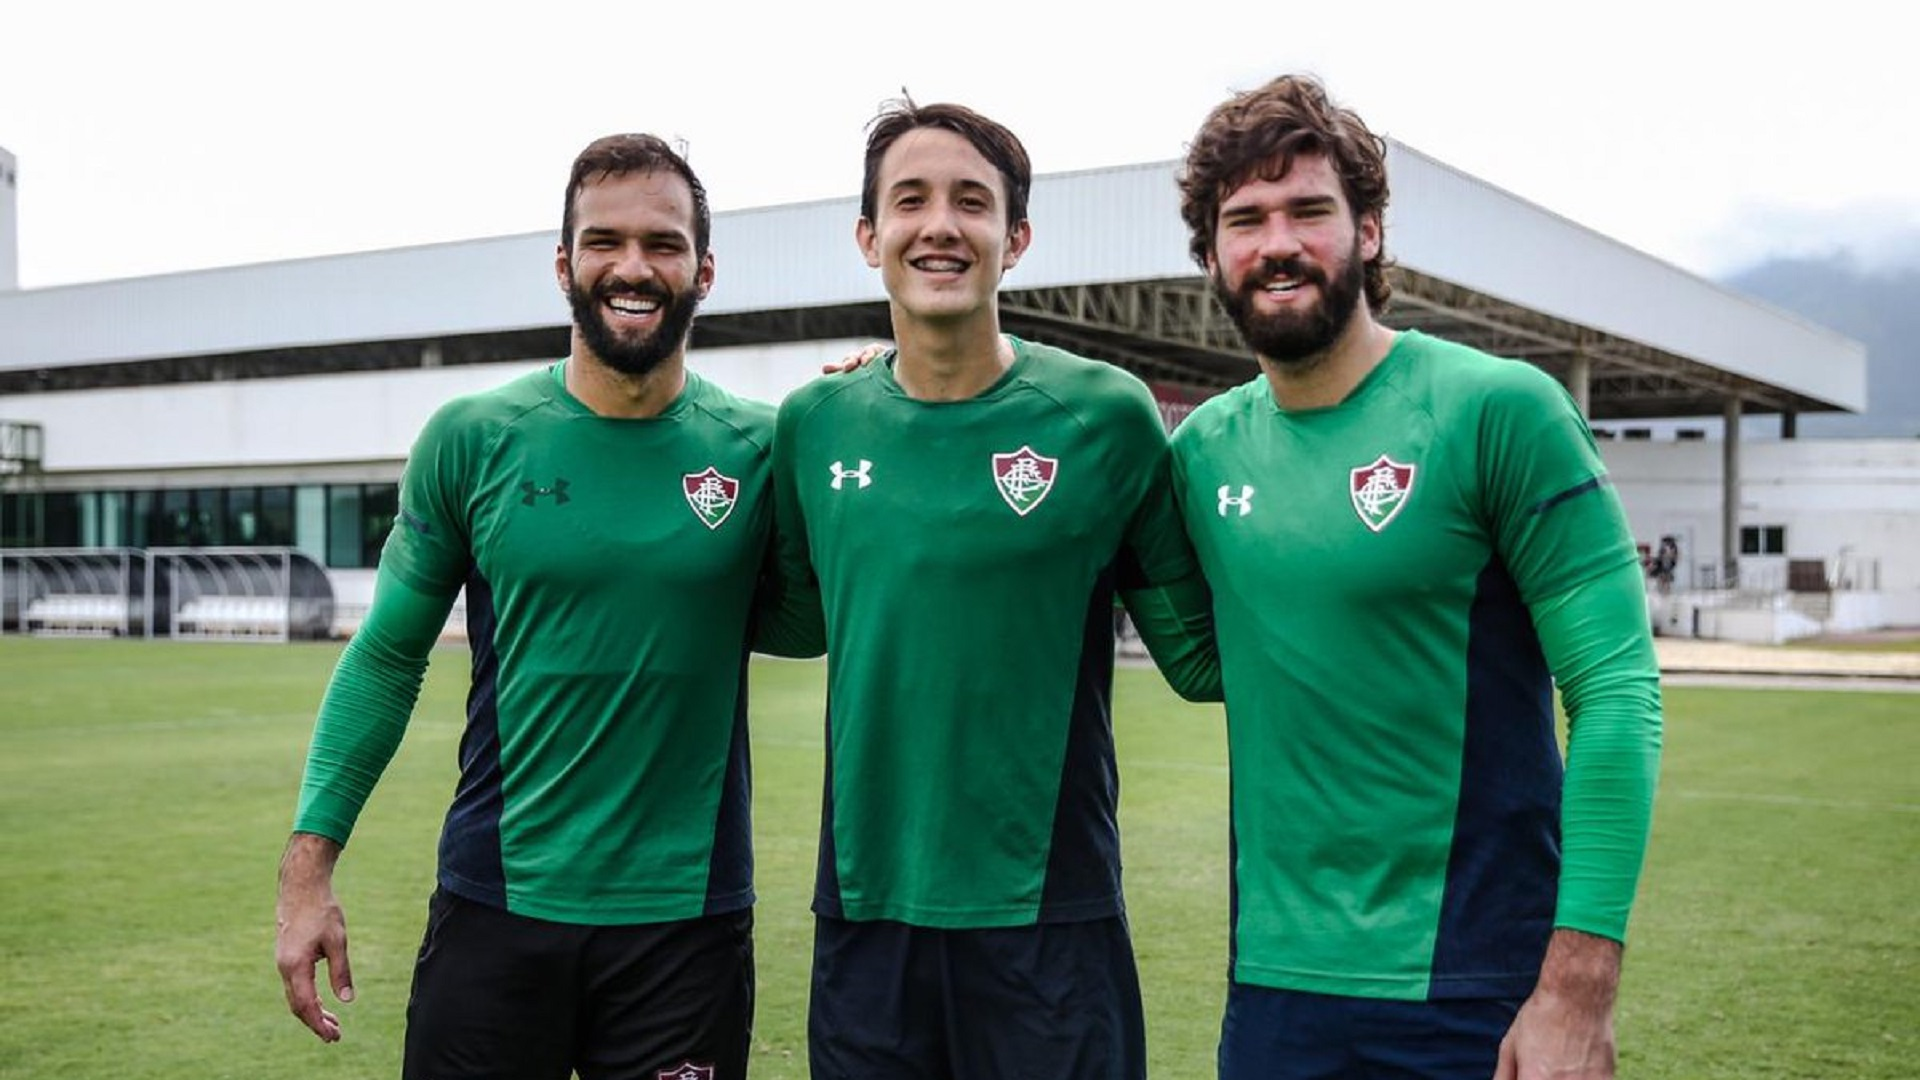 Liverpool sign U17 World Cup winner Pitaluga who worked with Alisson's brother at Fluminense